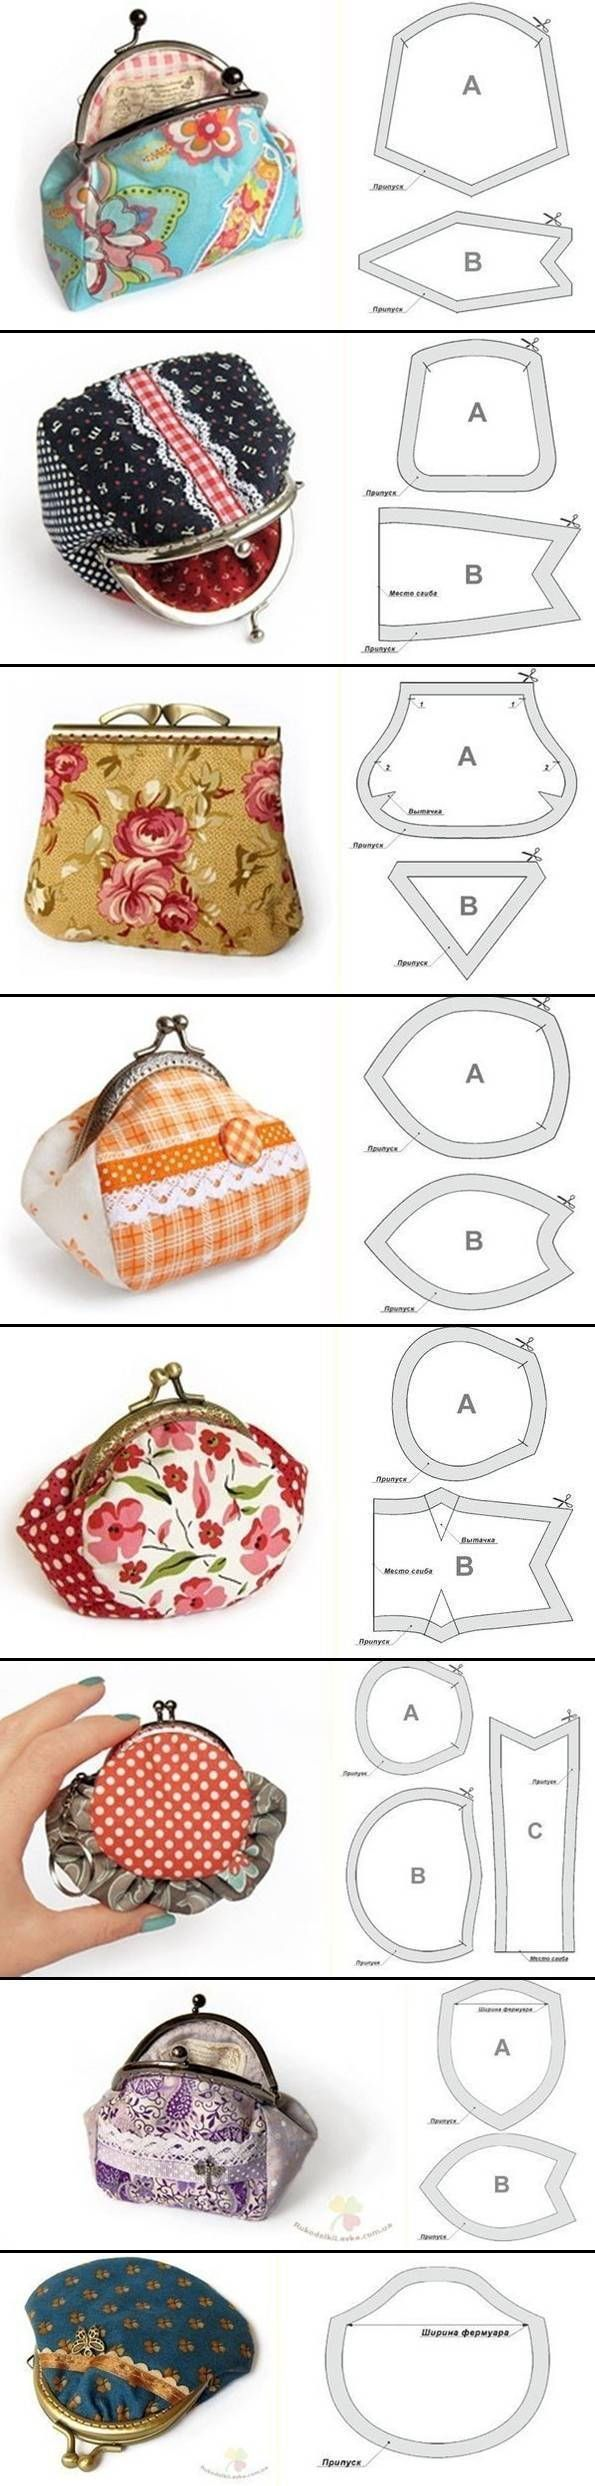 Kako da napravite svoju vintage tašnicu?/  How to make your own vintage purse? #tašnice DIY Cute Purse Templates